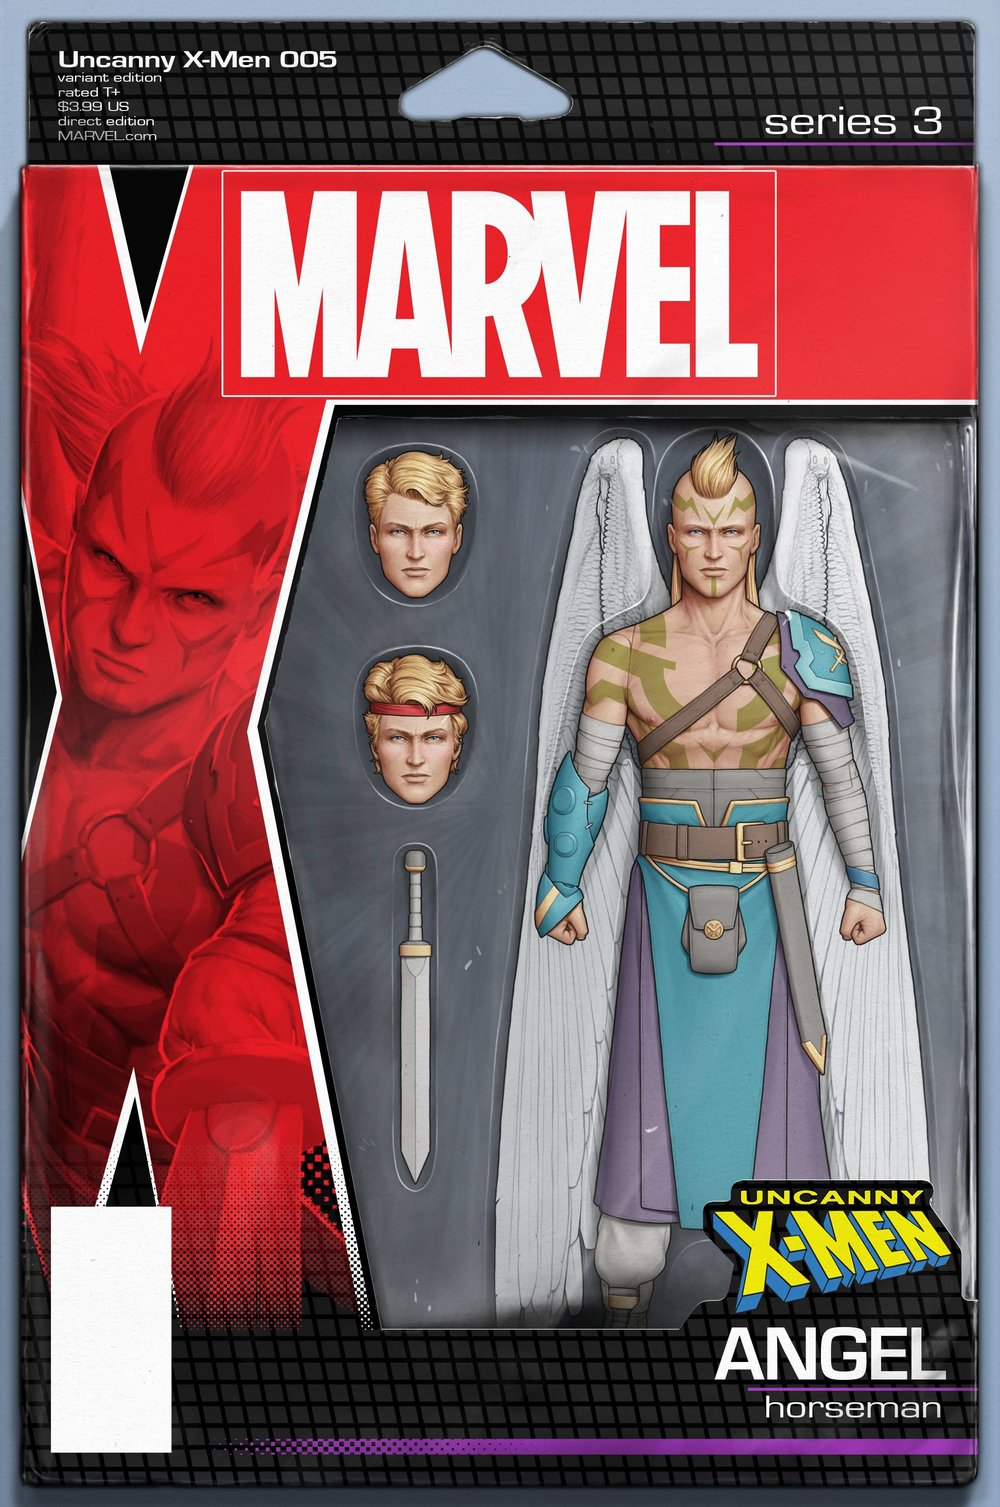 UNCANNY X-MEN 5 CHRISTOPHER ACTION FIGURE VAR.jpg